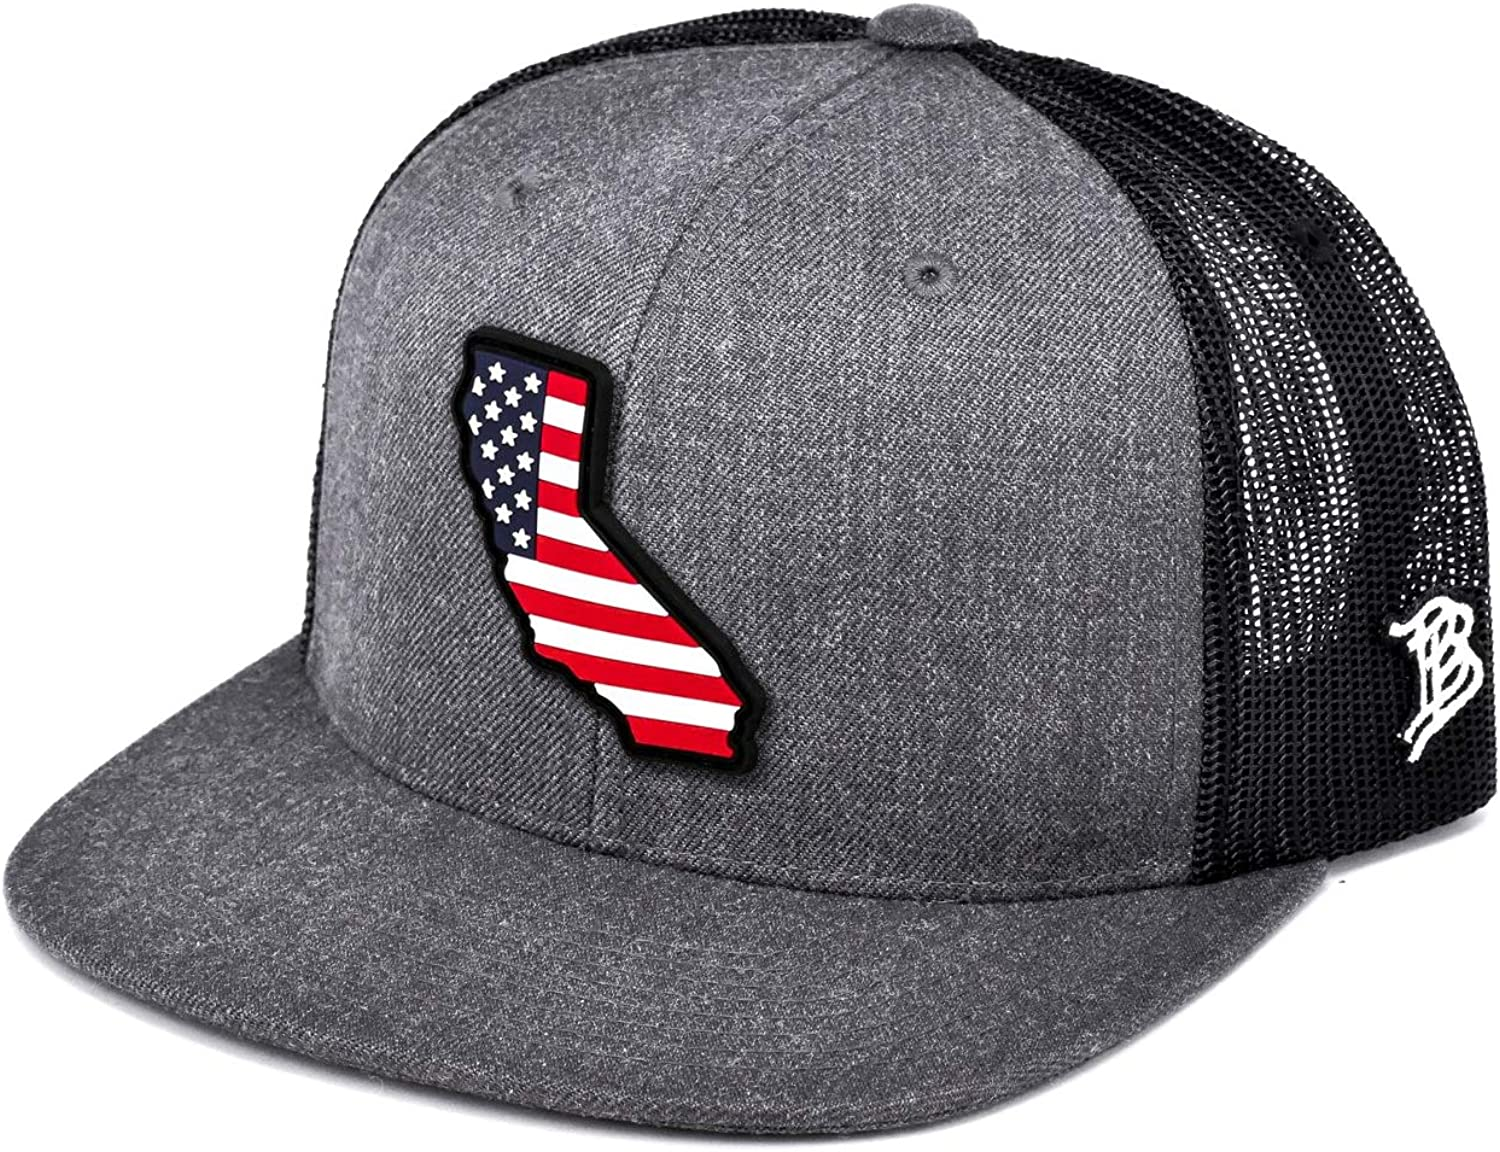 Branded Bills California Rogue Patriot PVC Patch Hat Flat Trucker - One Size Fits All